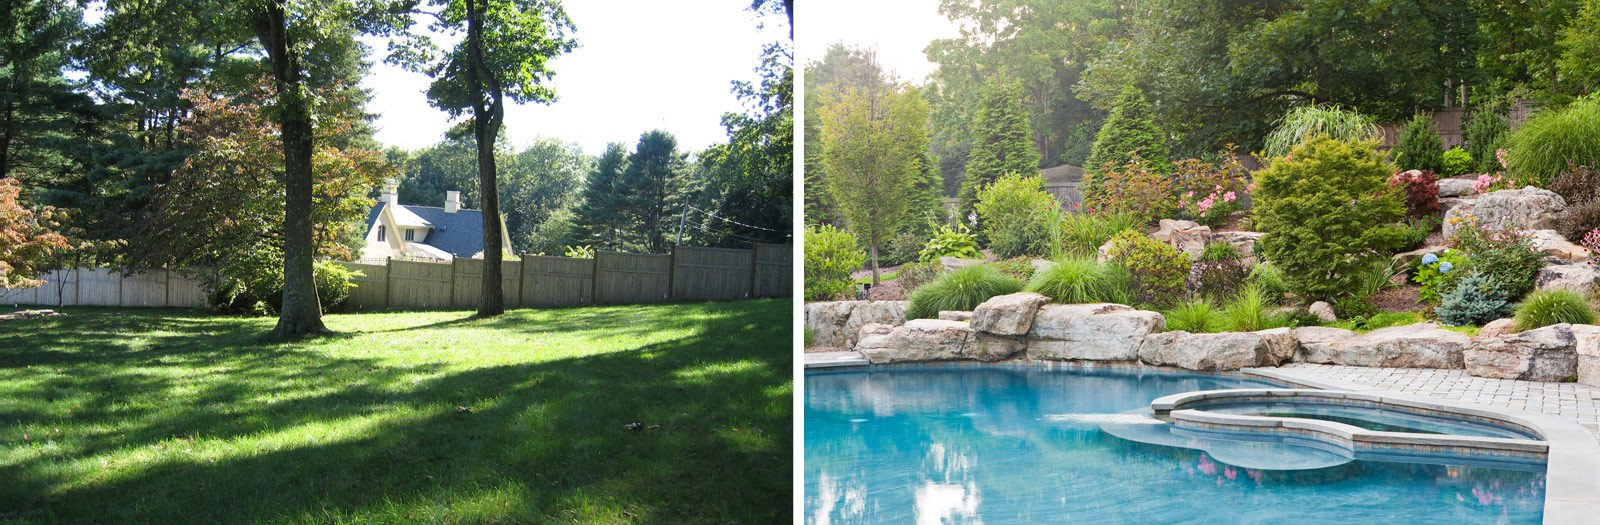 Cording landscape design pool construction before and for Pool design new jersey